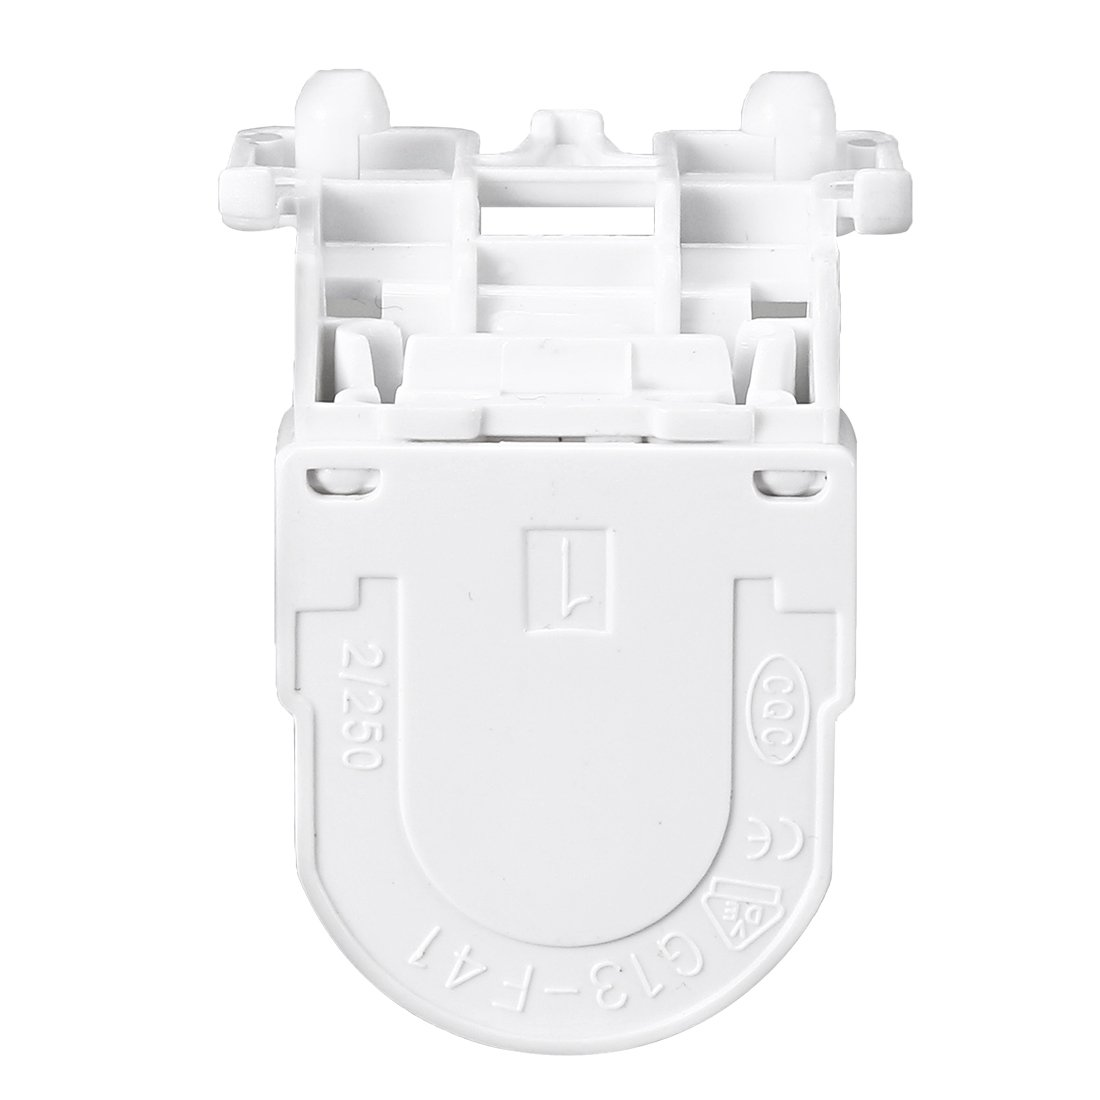 uxcell 8 Pcs 2A G13-F266 T8 Socket G13 Base Fluorescent Lamp Holder Light Accessory White a18031300ux0137